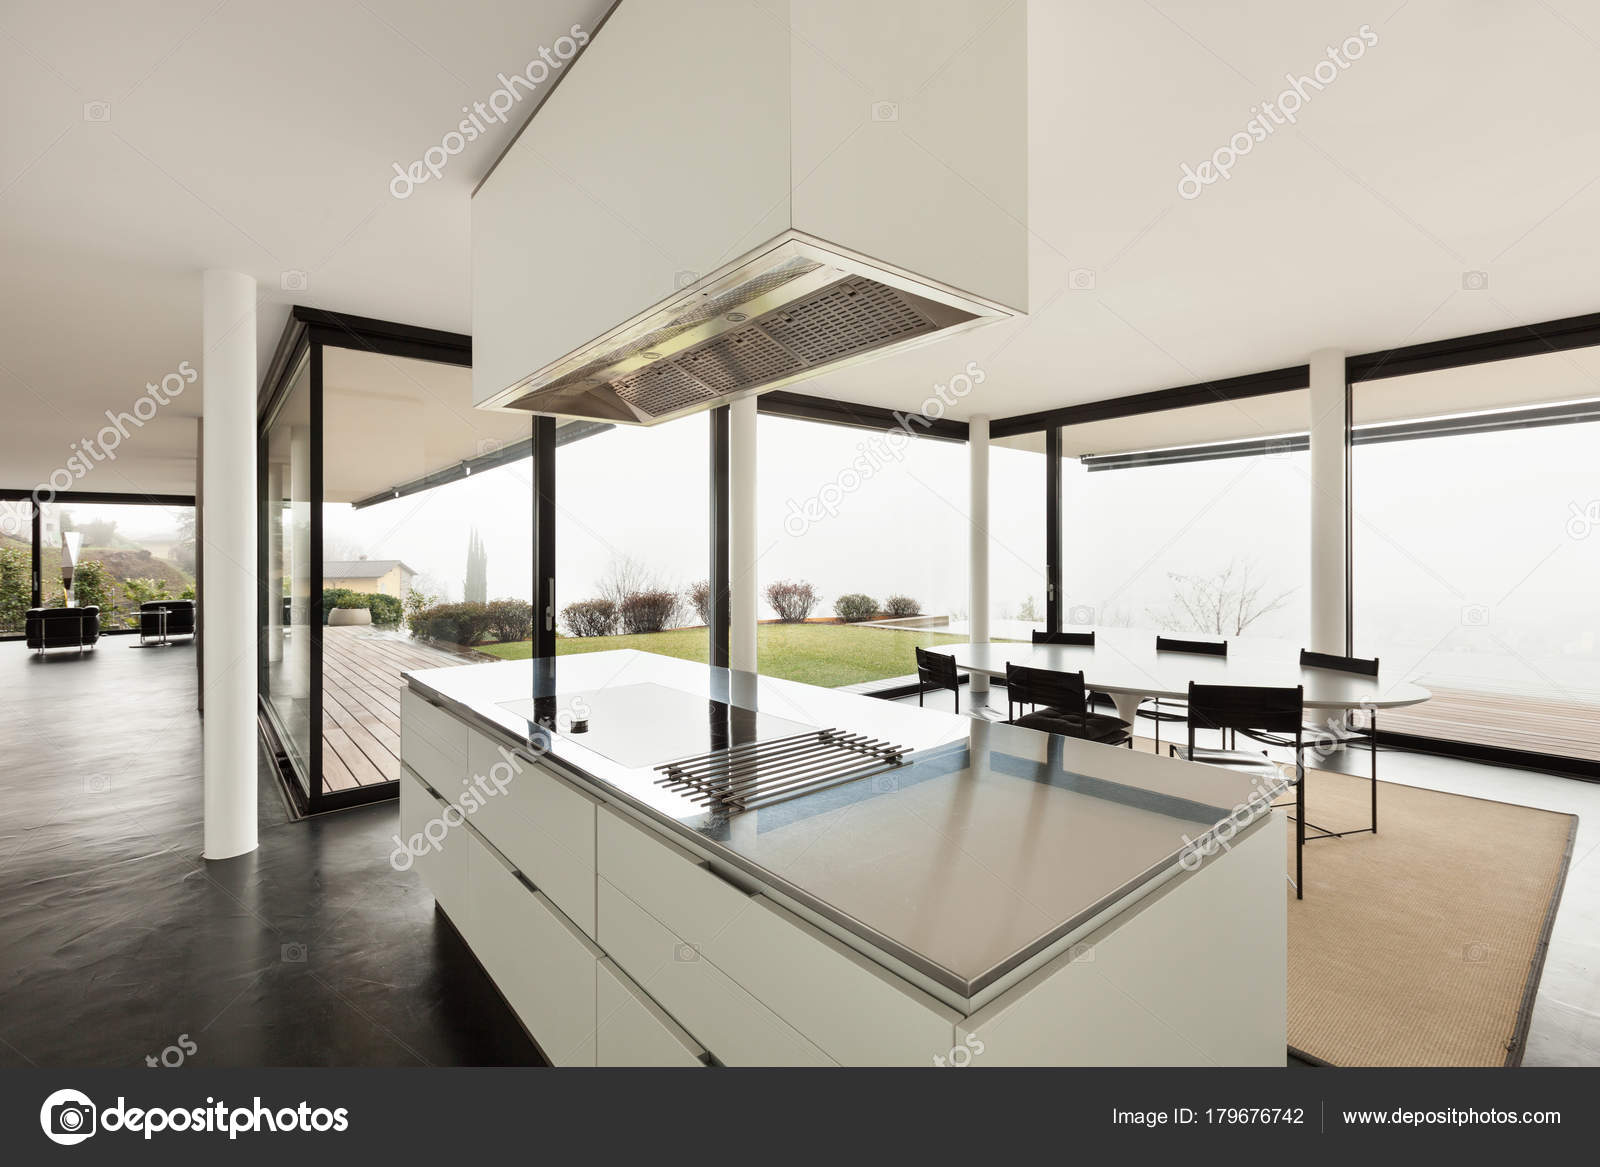 Architecture beautiful interior of a modern house stock image